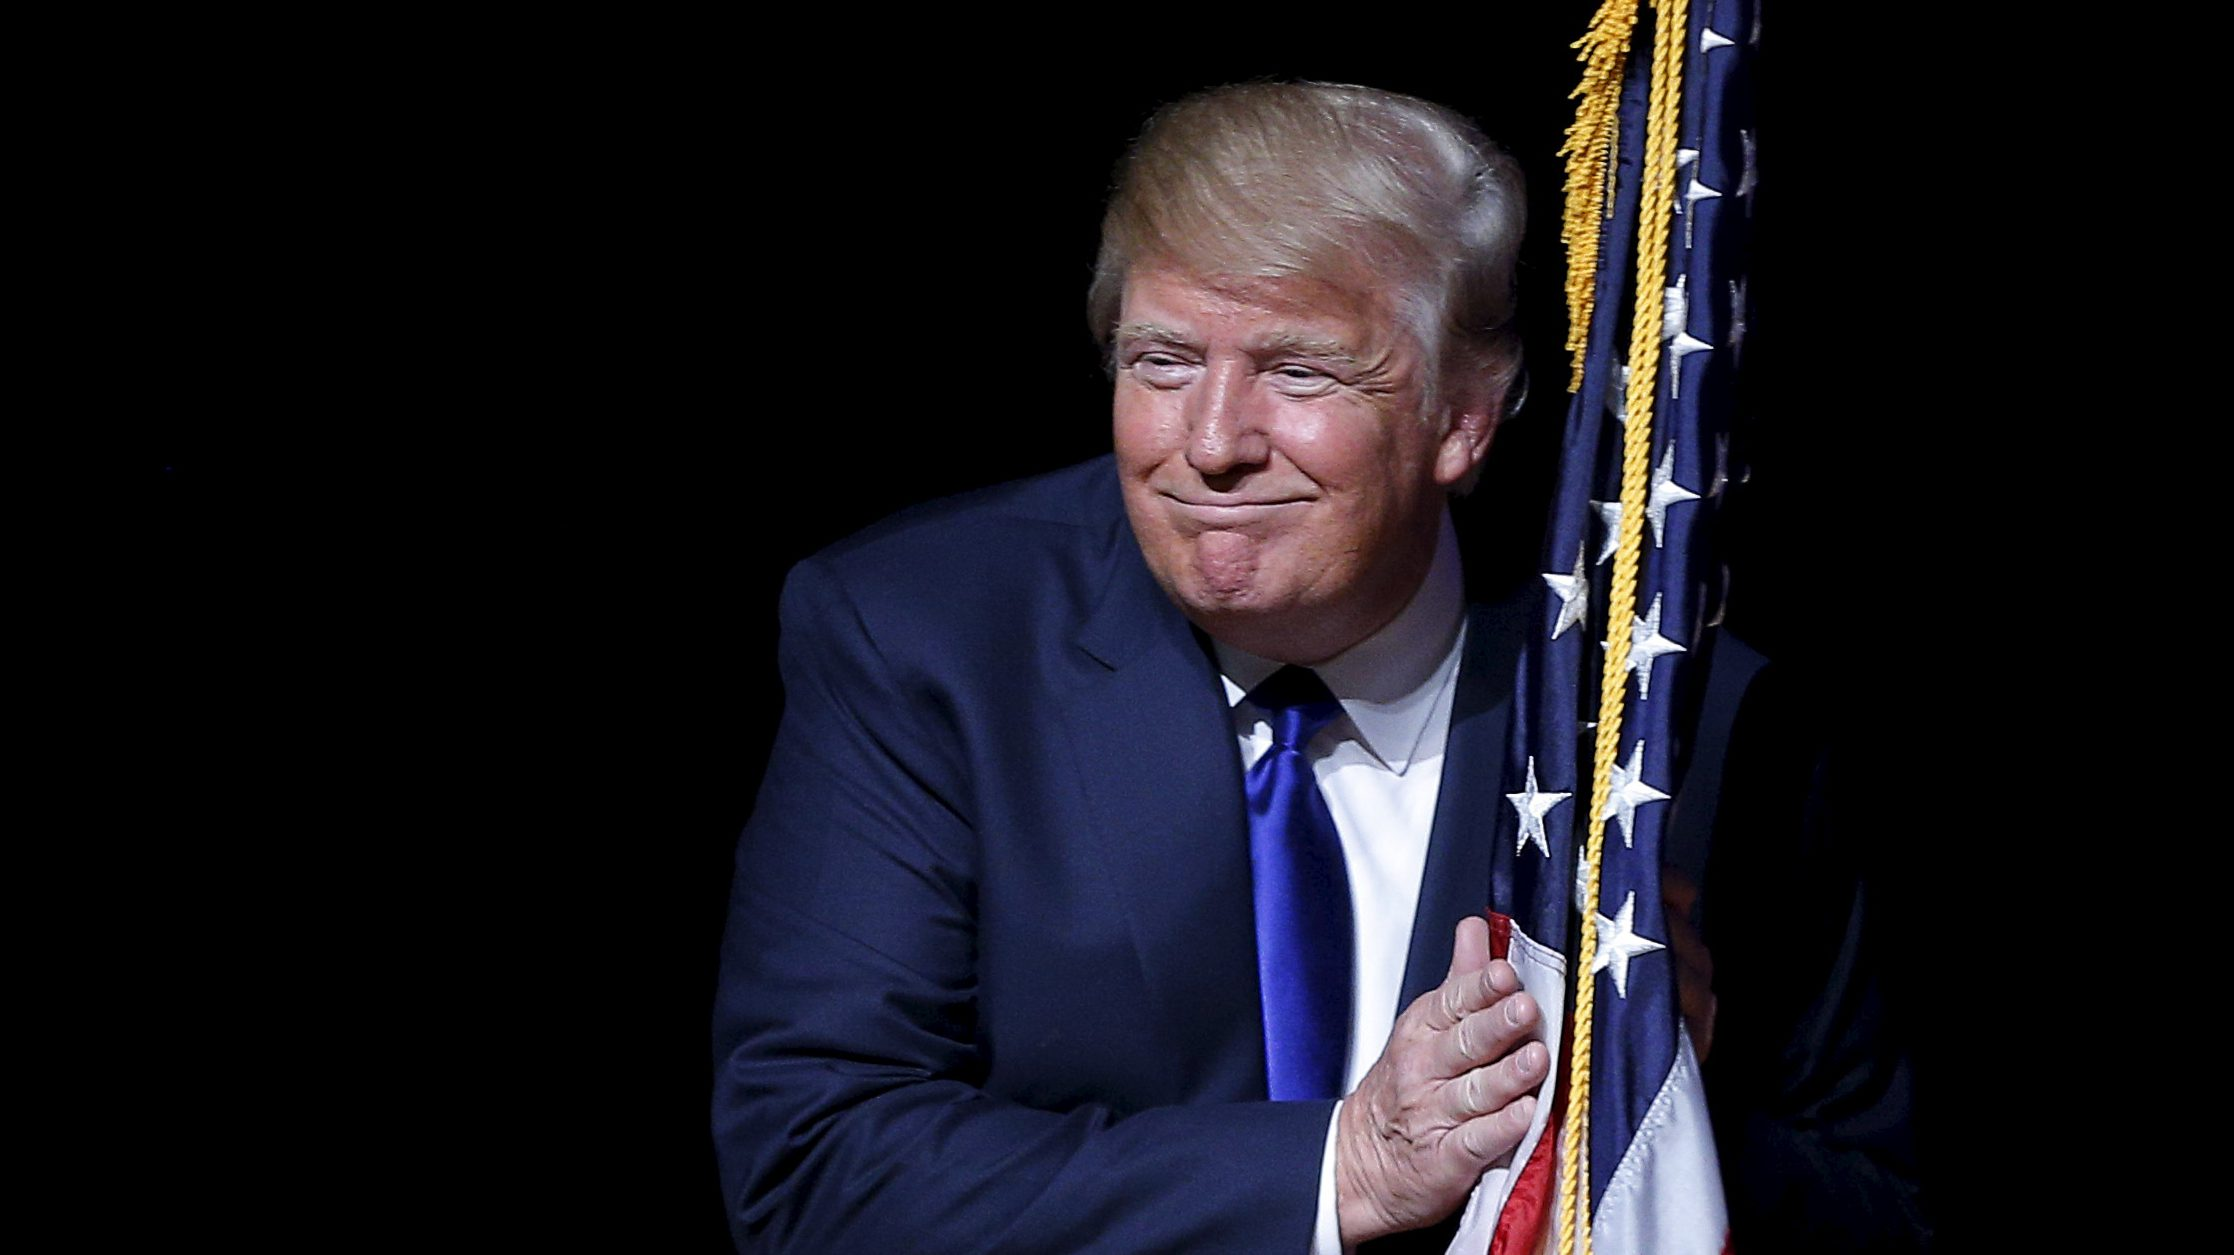 Donald Trump grinning with a flag